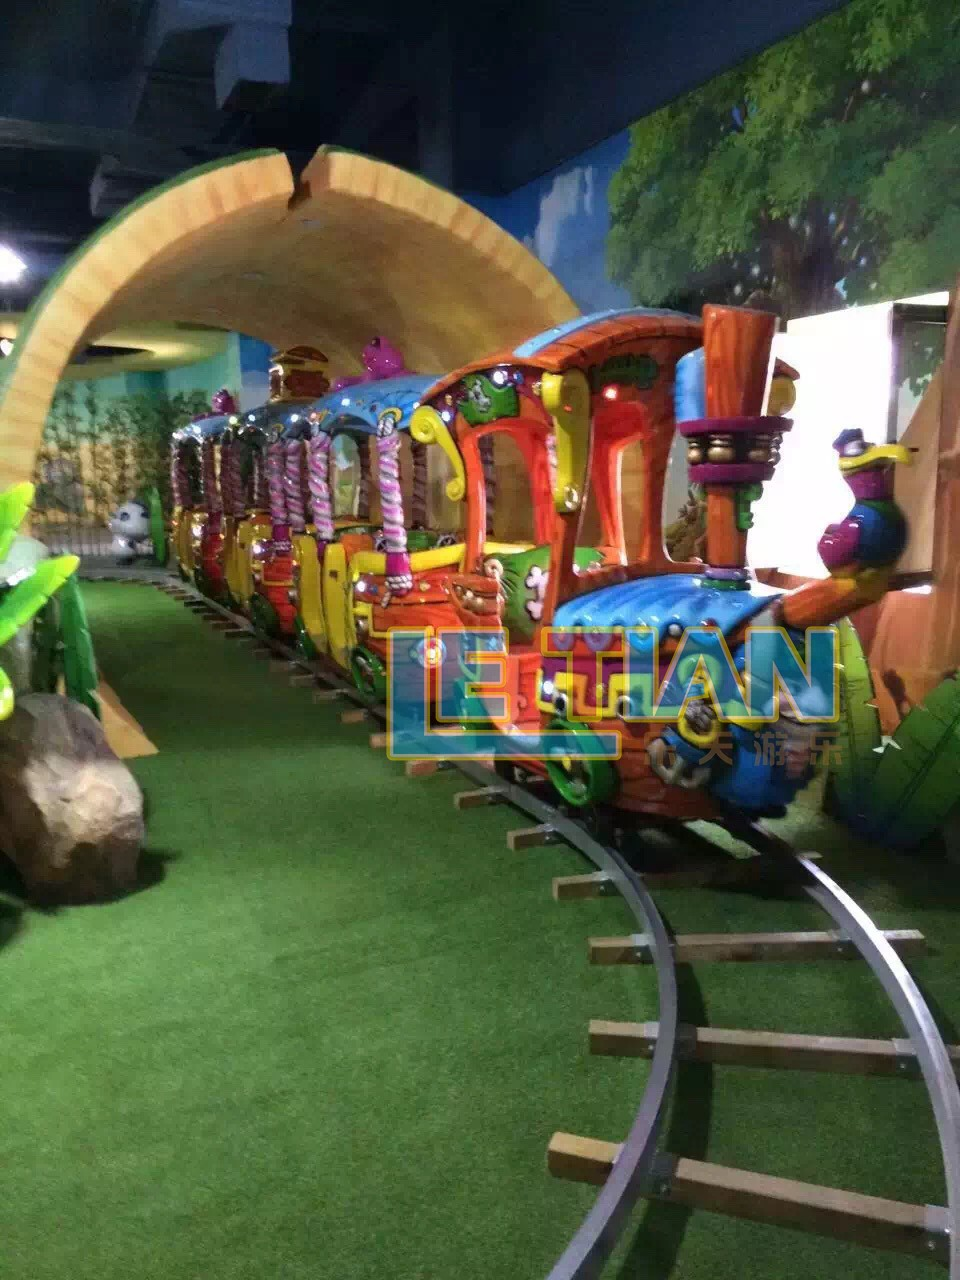 LETIAN small themed train rides company park playground-1